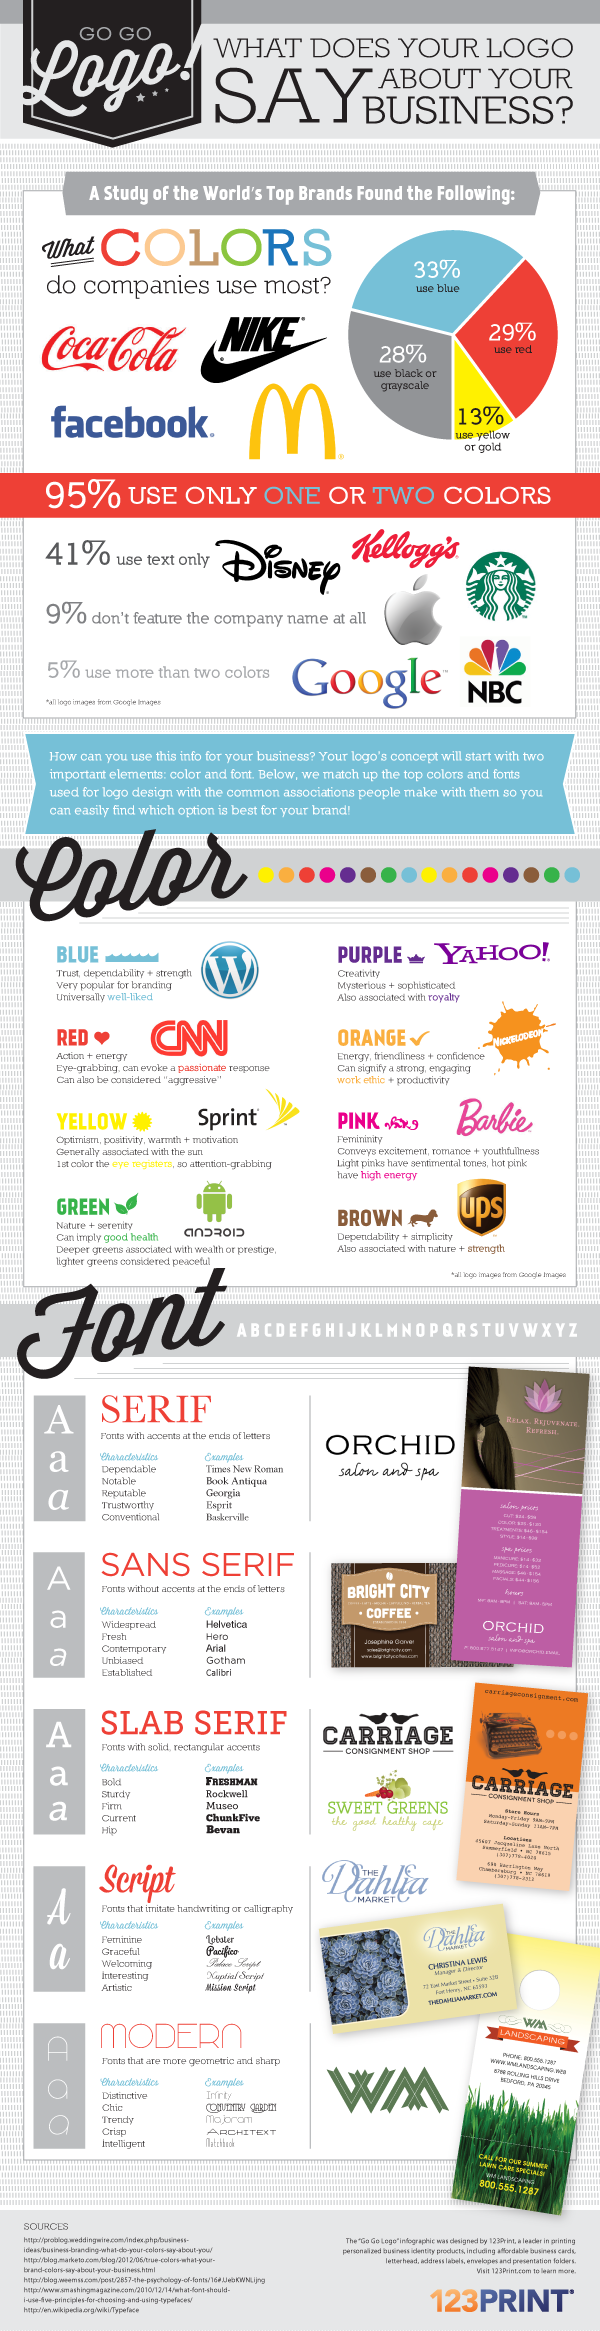 What does your logo say about your business